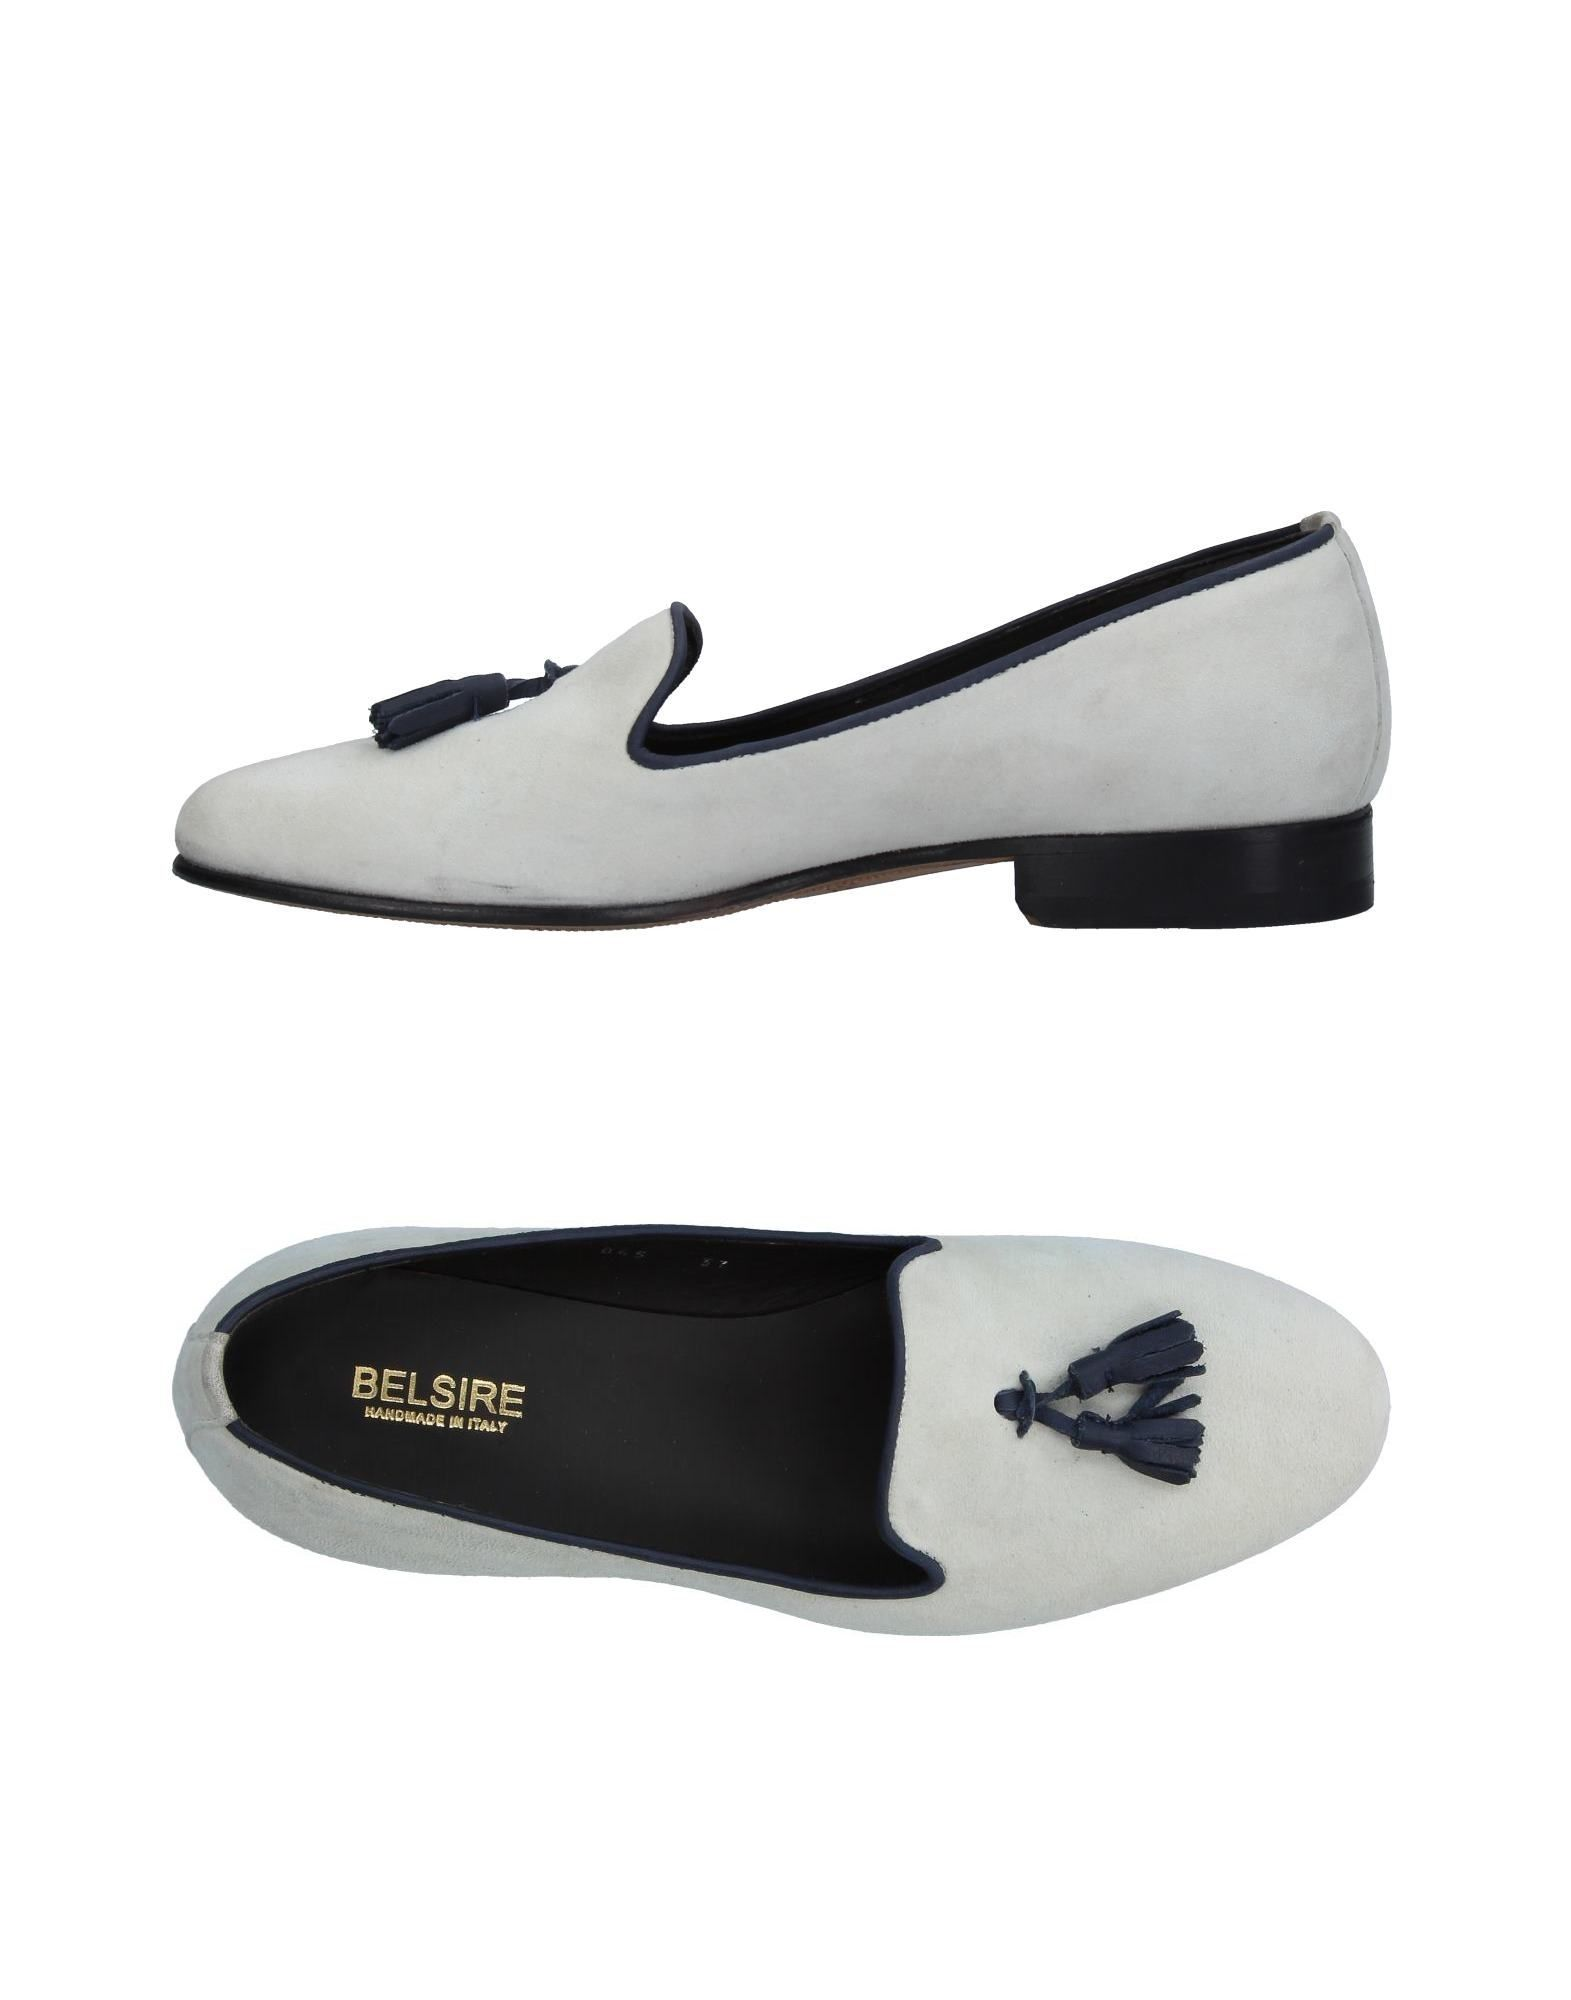 BELSIRE Loafers in Ivory